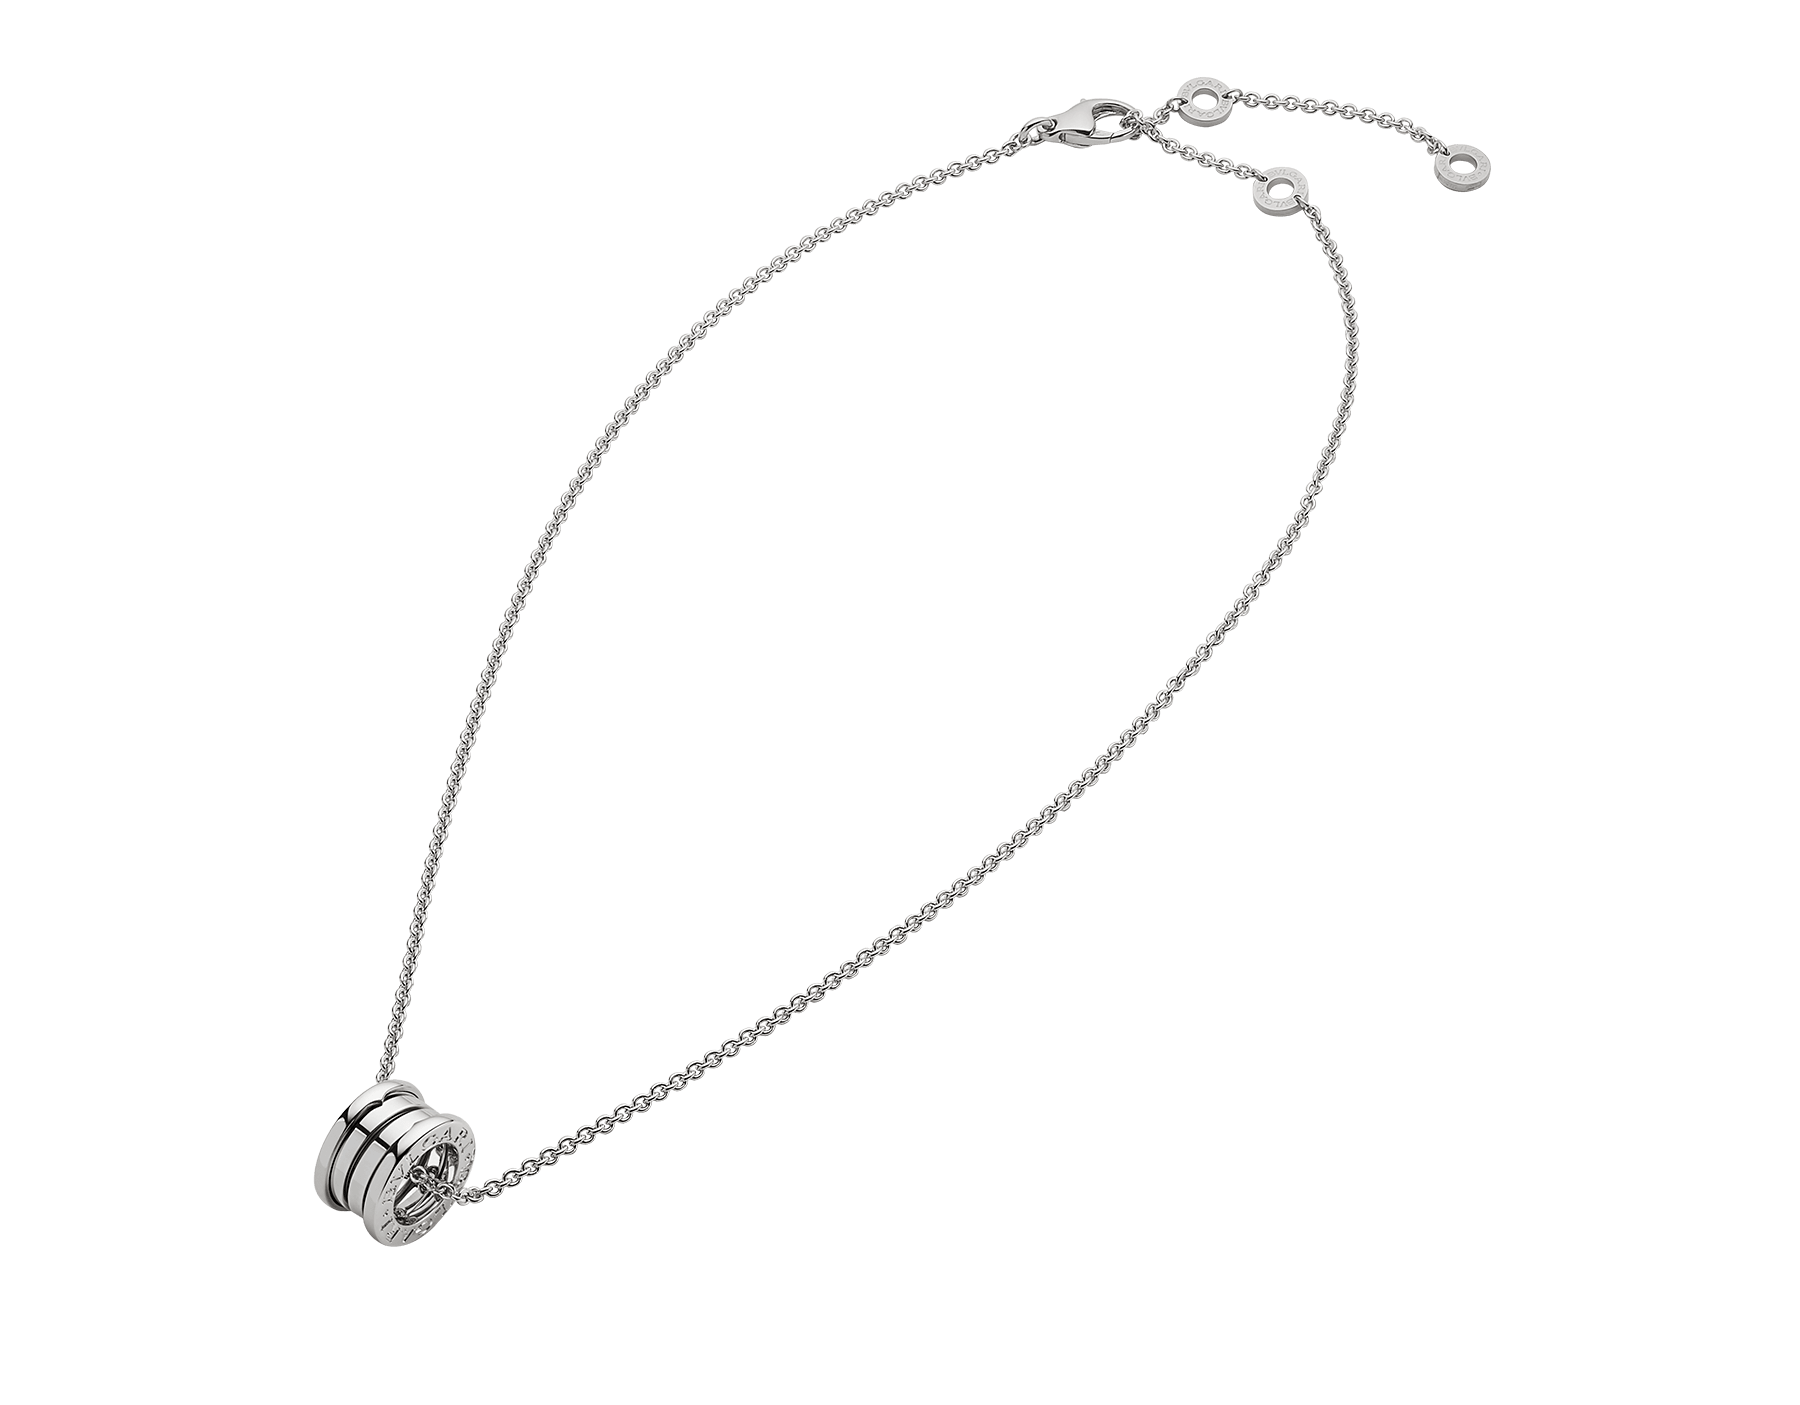 B.zero1 necklace with small round pendant, both in 18kt white gold. 352815 image 2